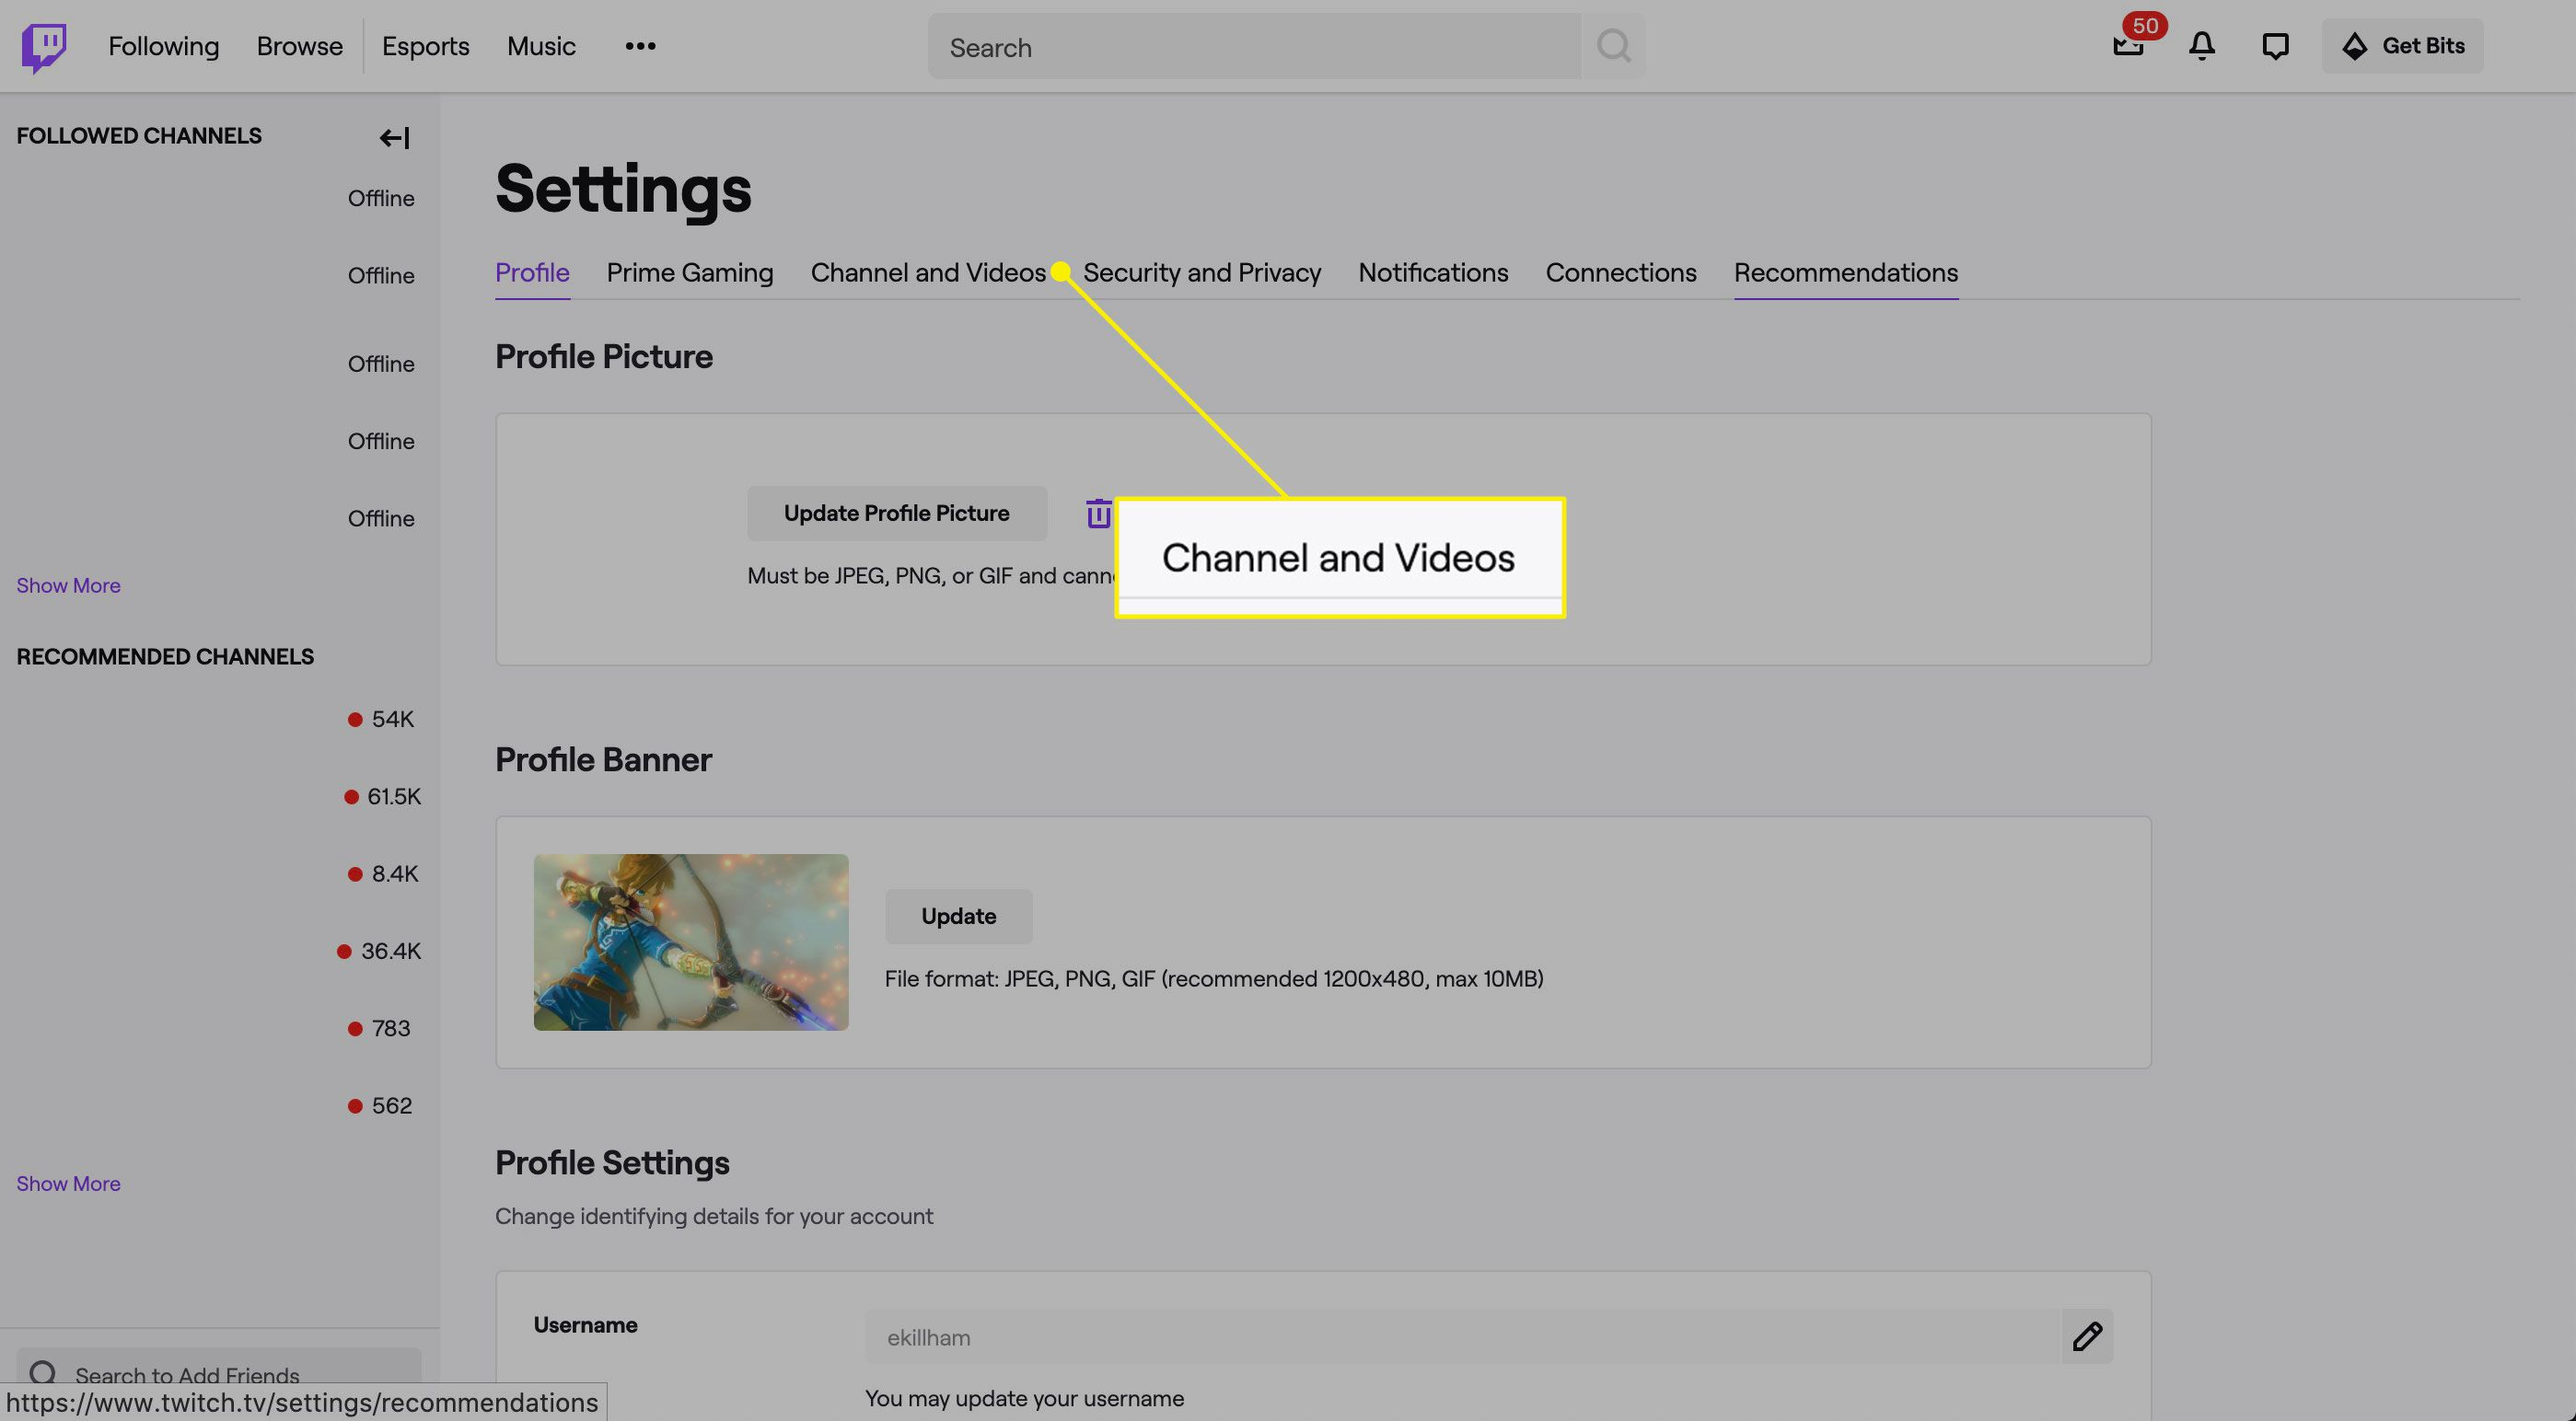 Channel and Videos in Twitch settings